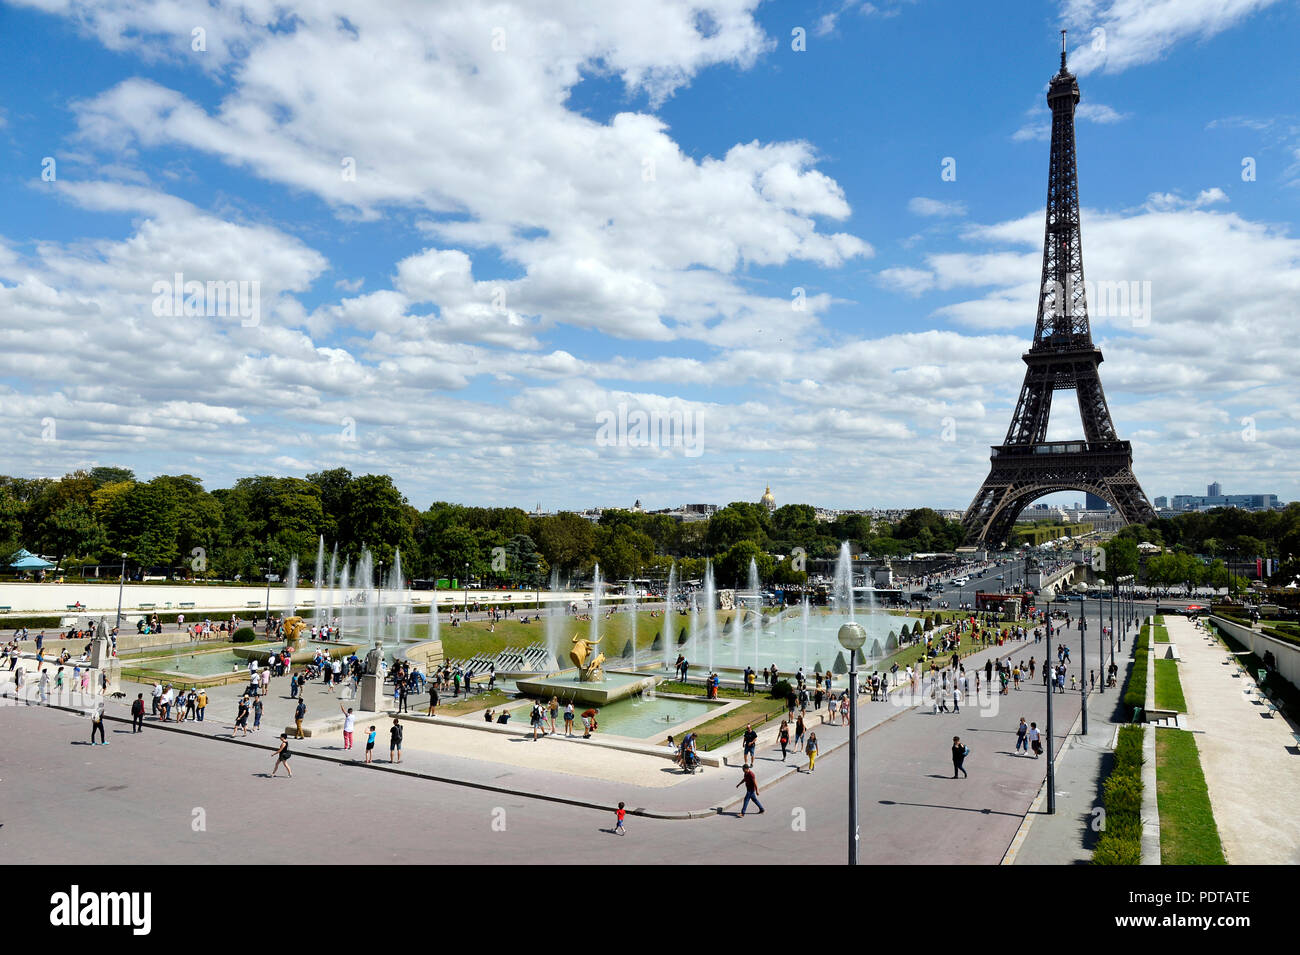 Heat wave in Paris - Trocadéro - Paris - France - Stock Image